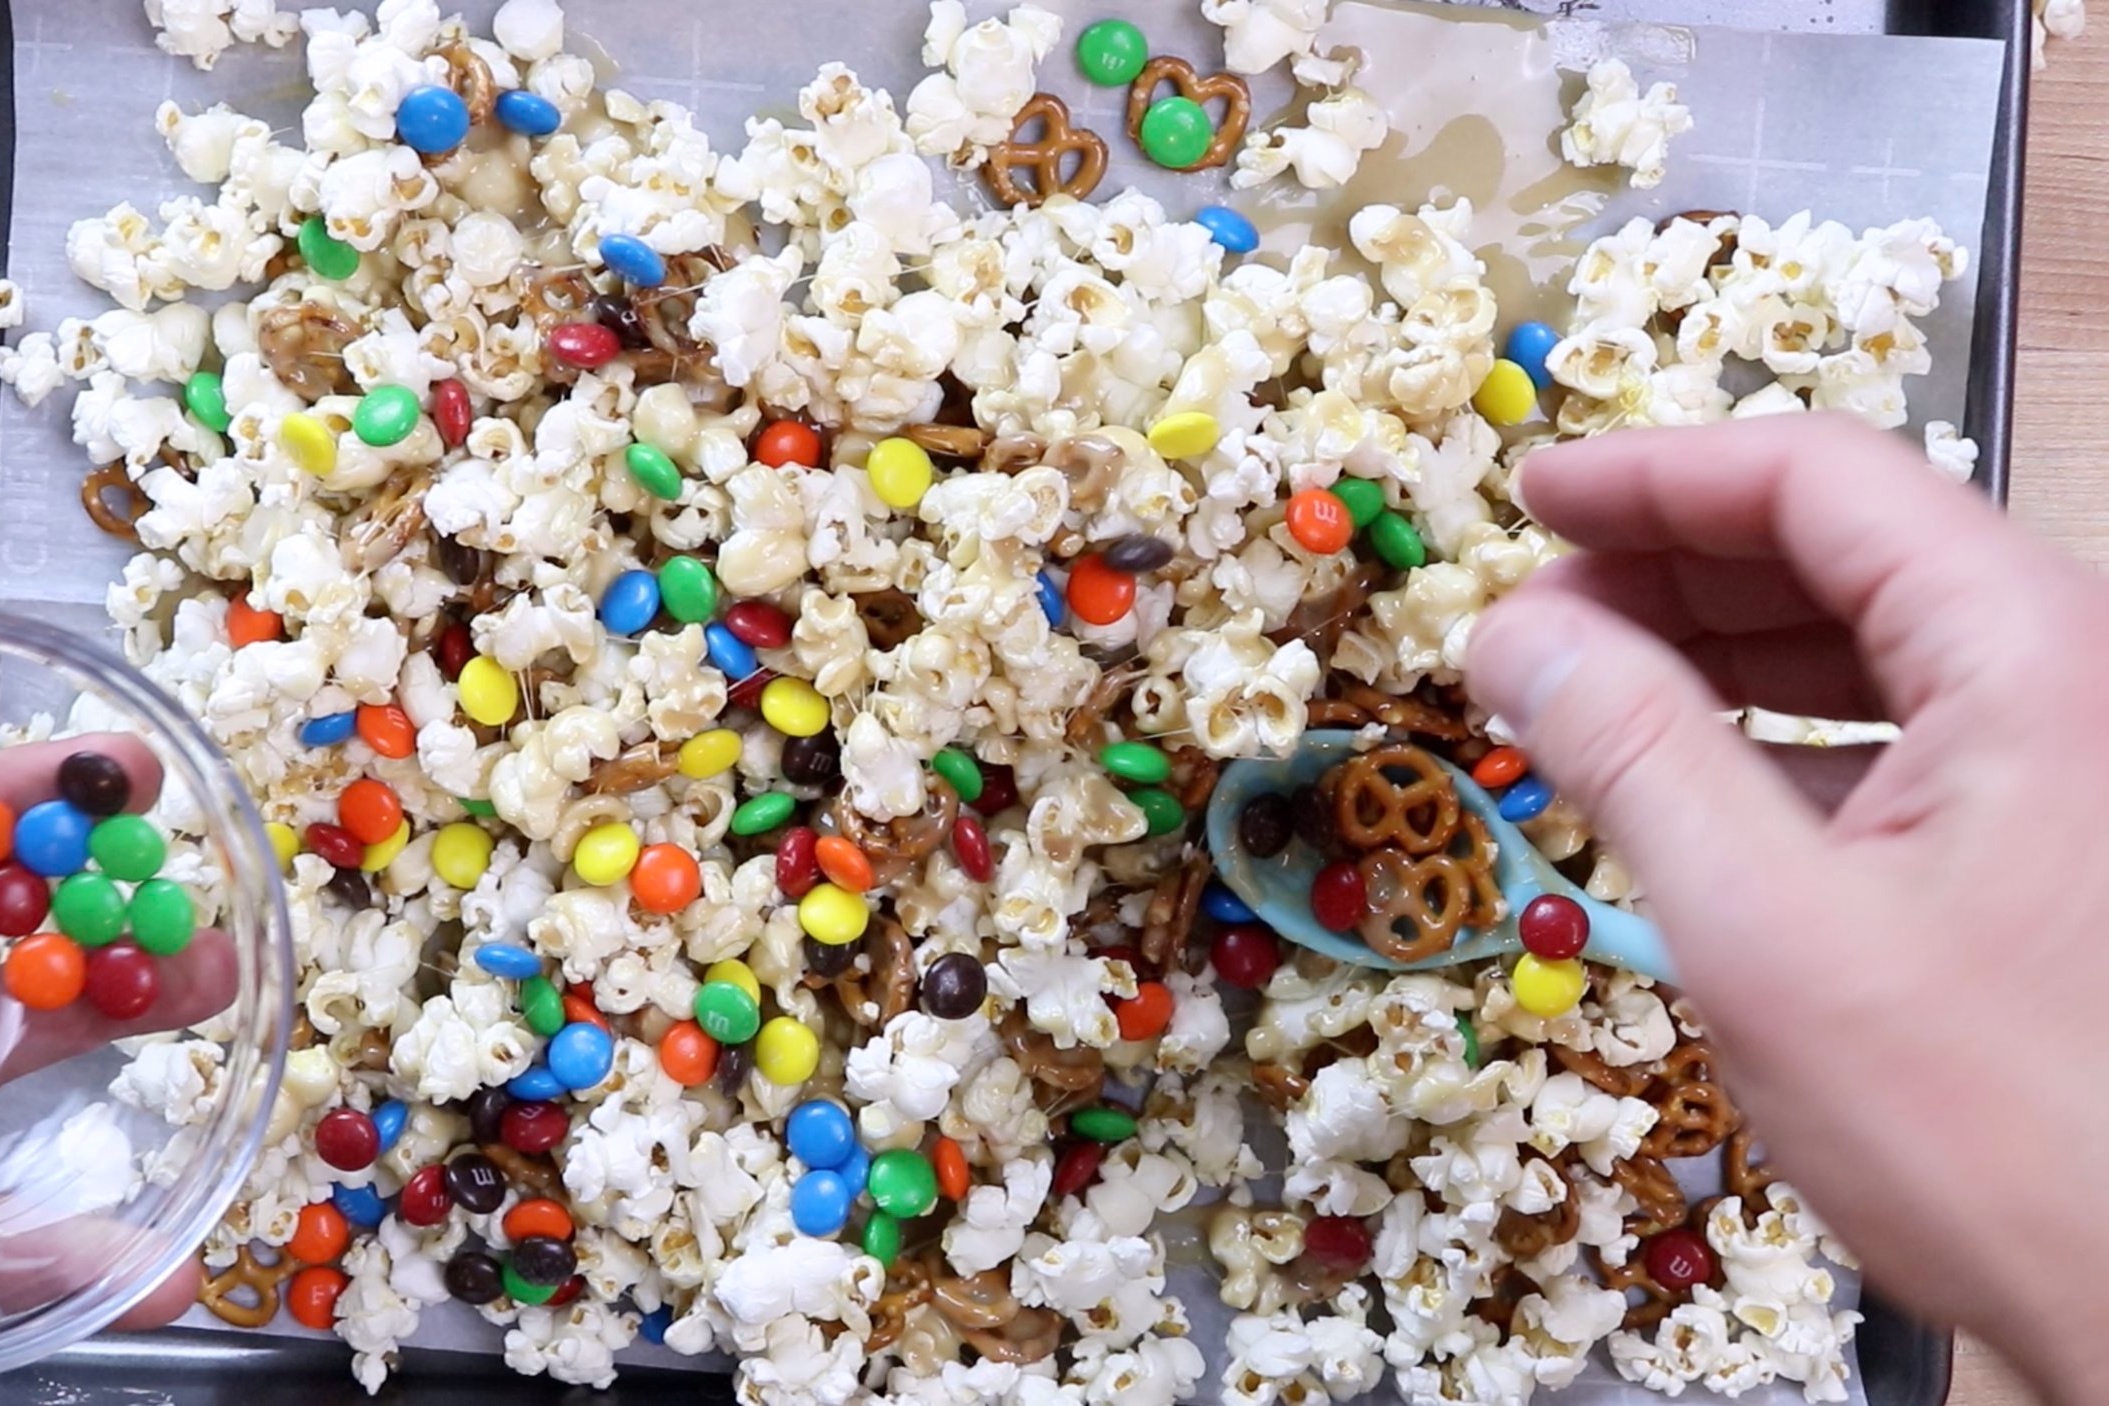 6. Add M&Ms and continue to stir. You can use your hands if needed. Just spray your hands with cooking spray and gently fold the popcorn mixture until all M&Ms are distributed evenly. -